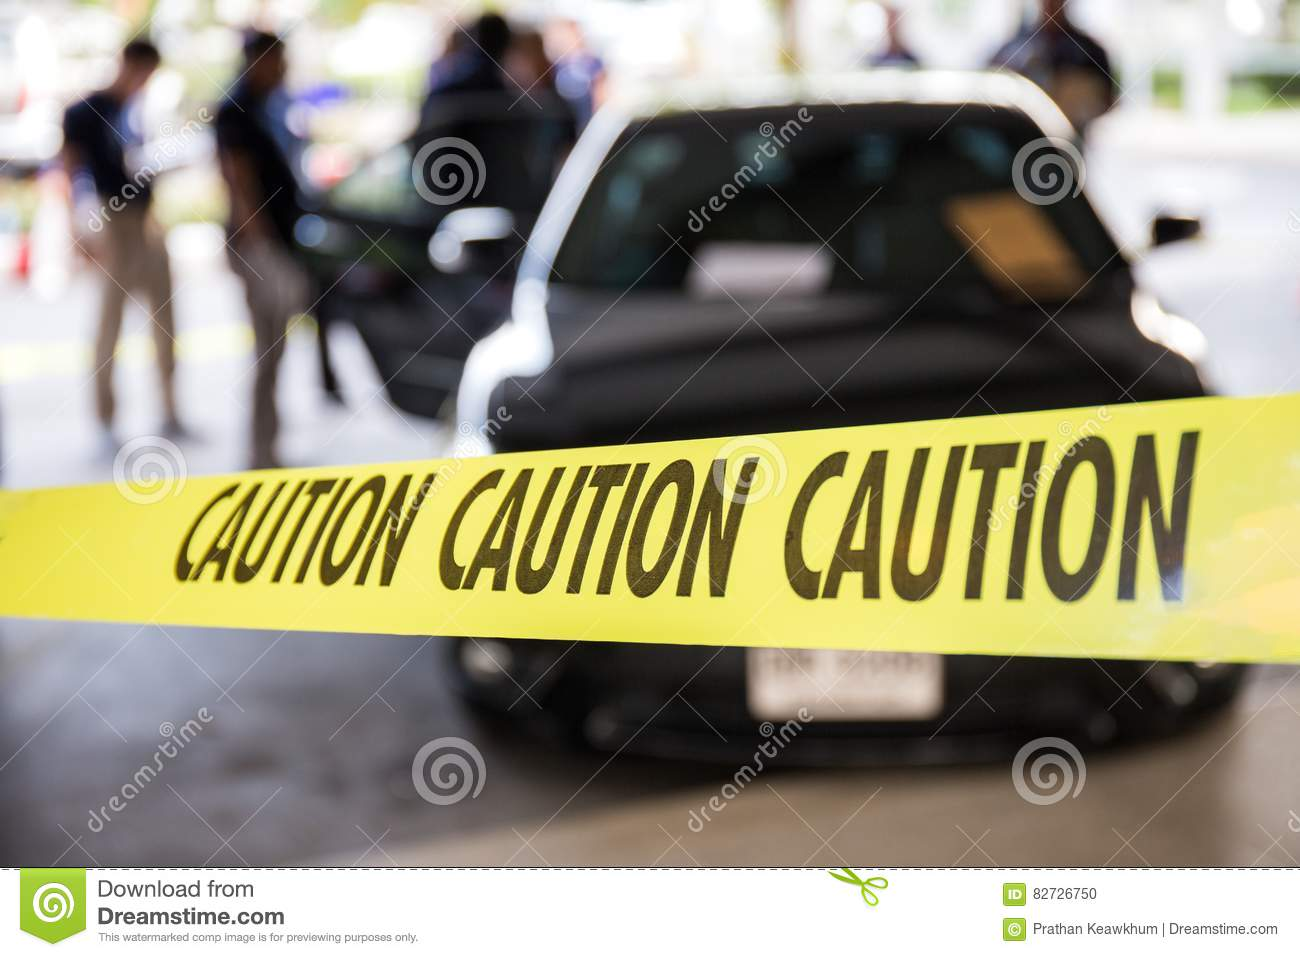 caution tape protect vehicle in crime scene investigation training course